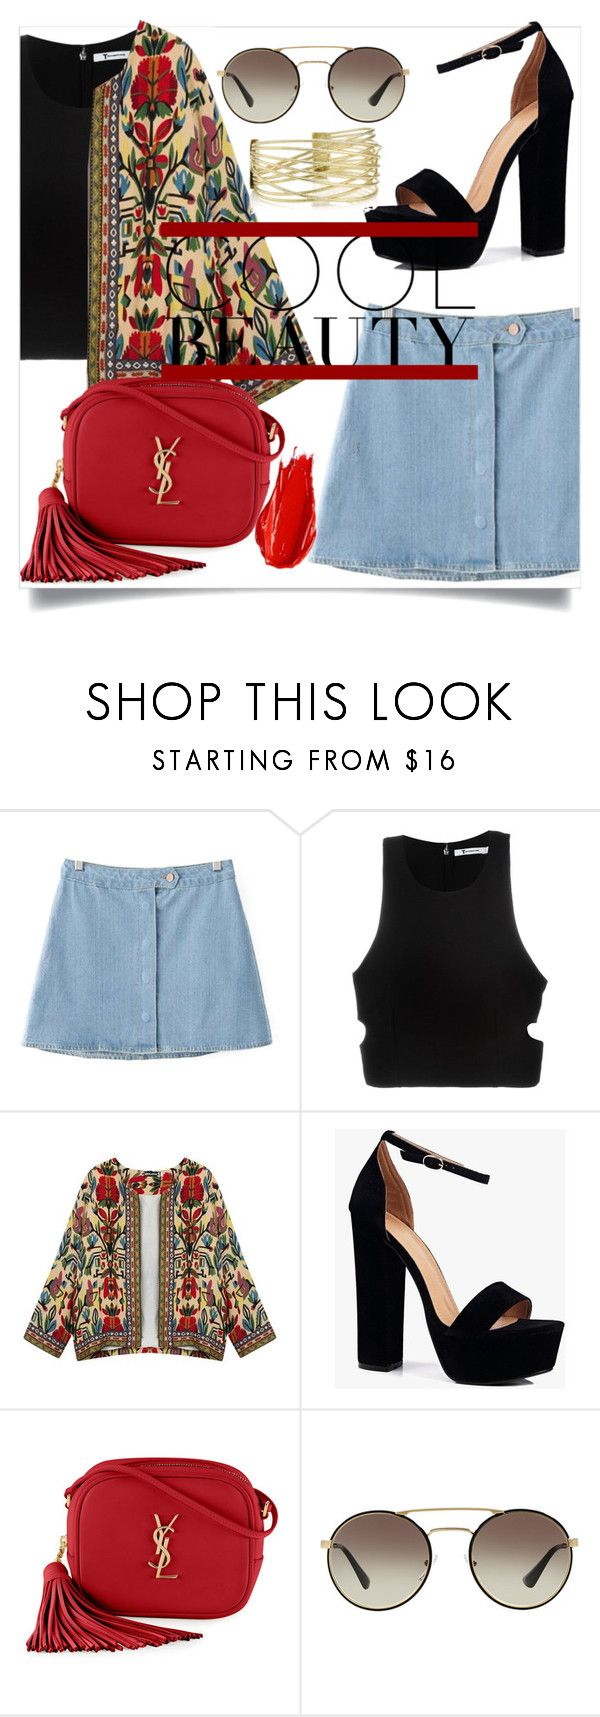 """Cool Beauty"" by eimy-marie ❤ liked on Polyvore featuring Chicnova Fashion, T By Alexander Wang, Boohoo, Yves Saint Laurent, Prada and Urban Decay"